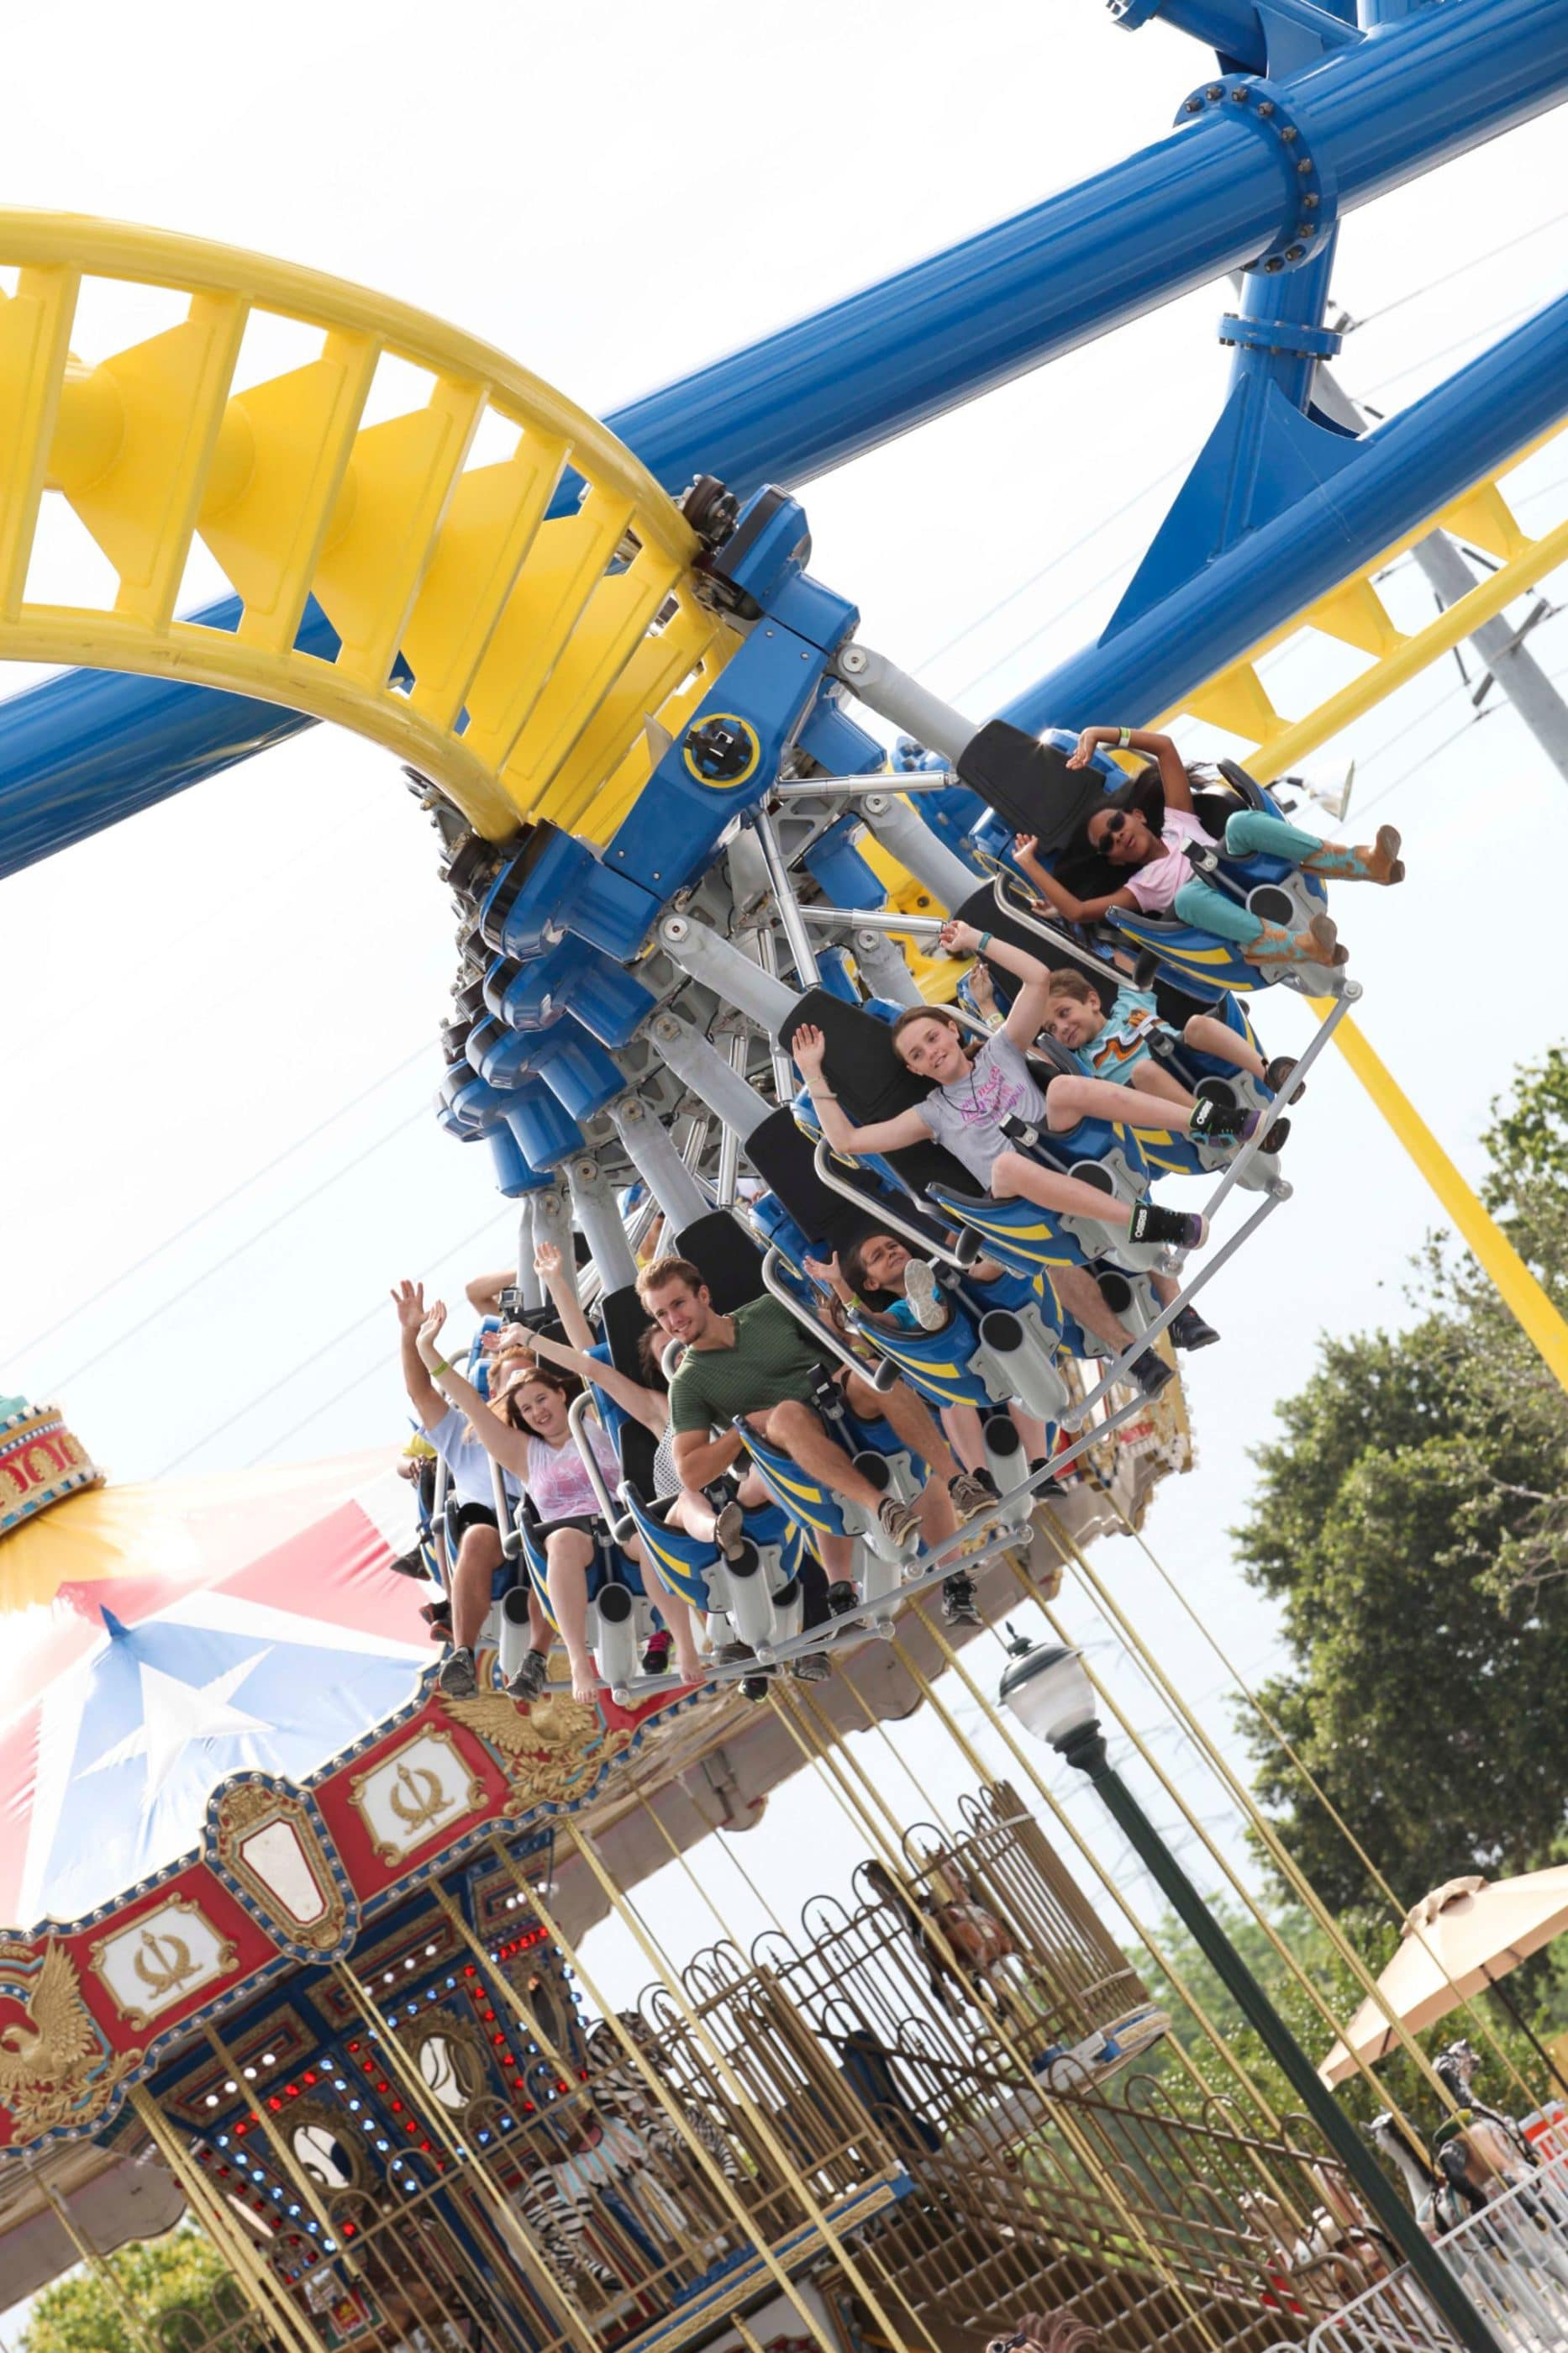 Families hang in seats on a roller coaster track at Fun Spot America i Orlando.